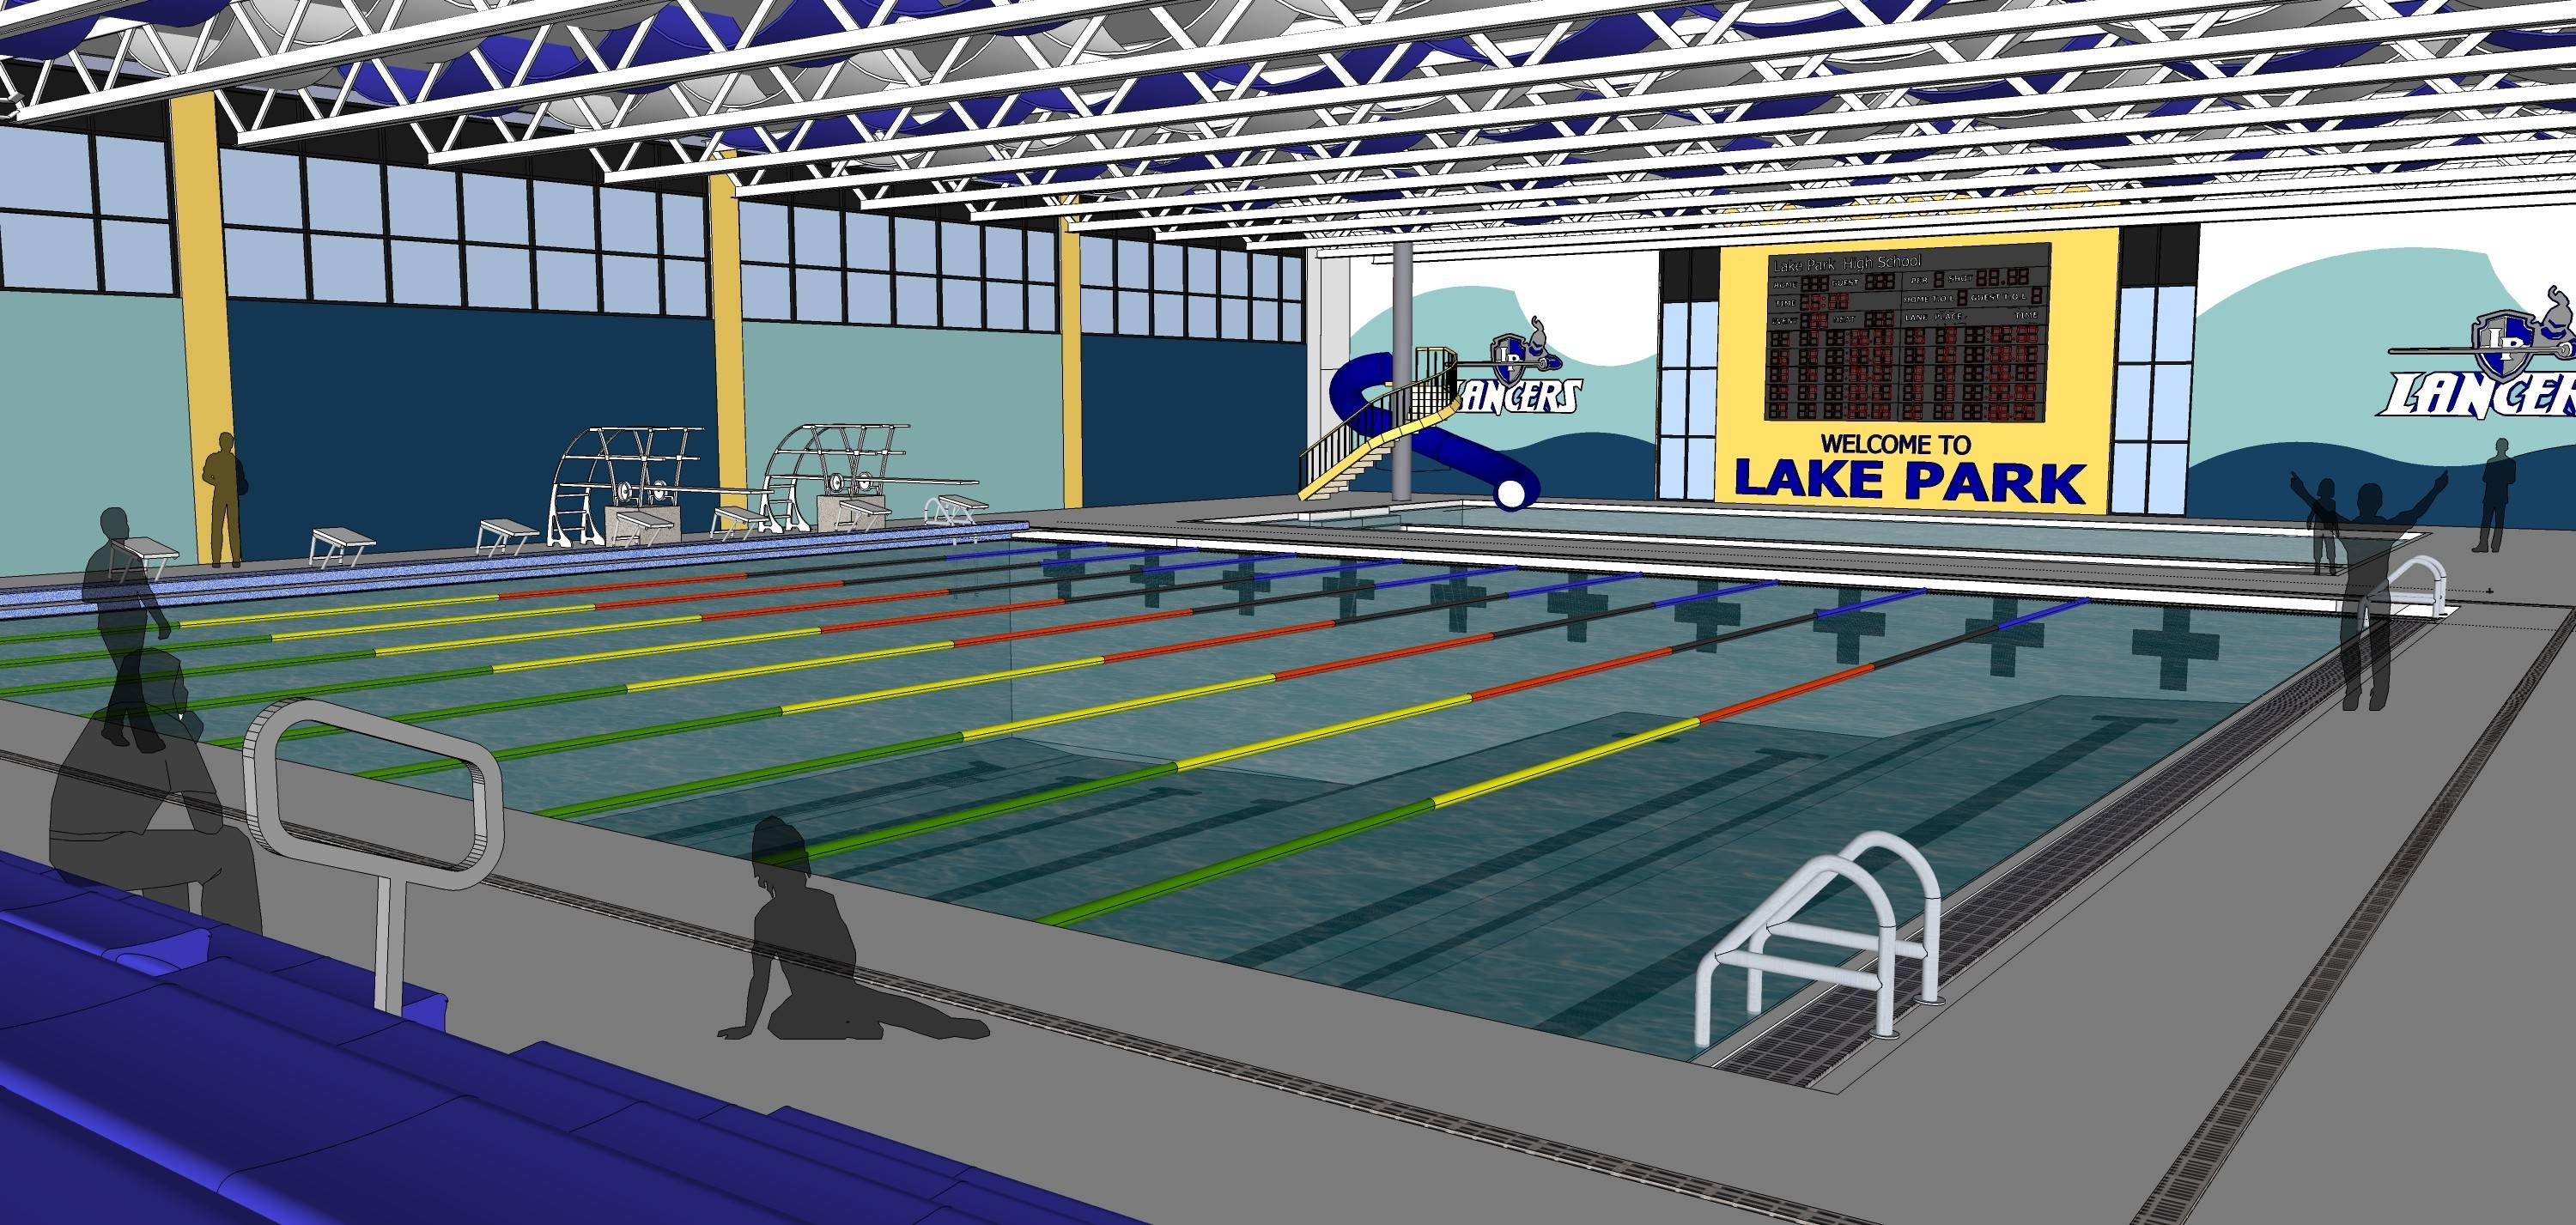 Early votes say 'no' to Lake Park pool